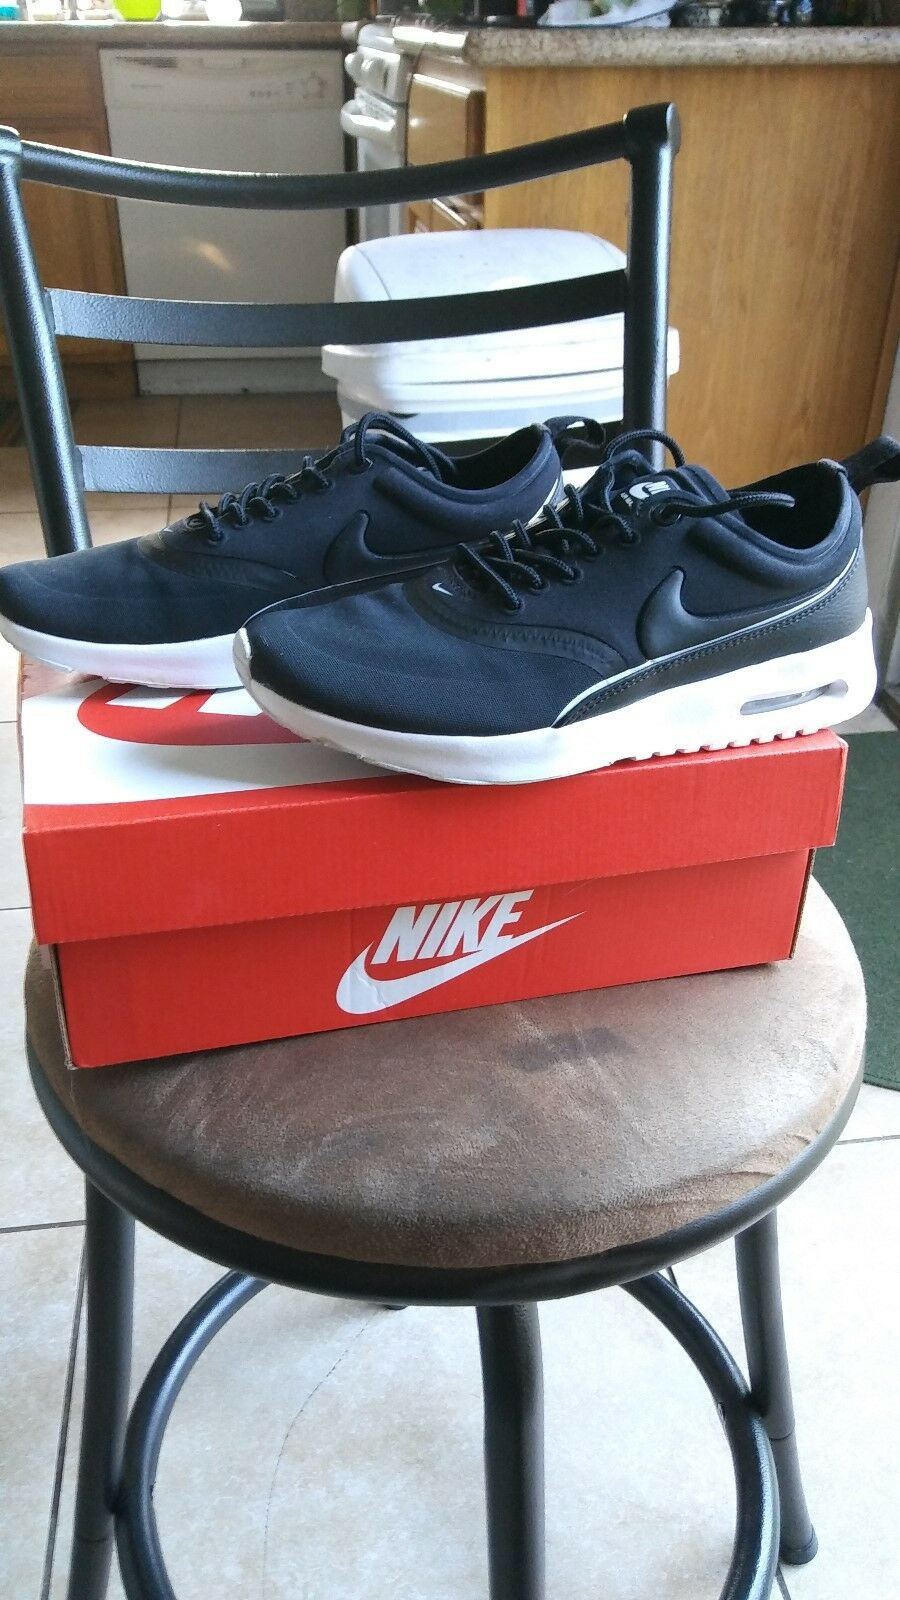 NIKE Air Max Thea Ultra Women's Size 6 Black   White 844926 001